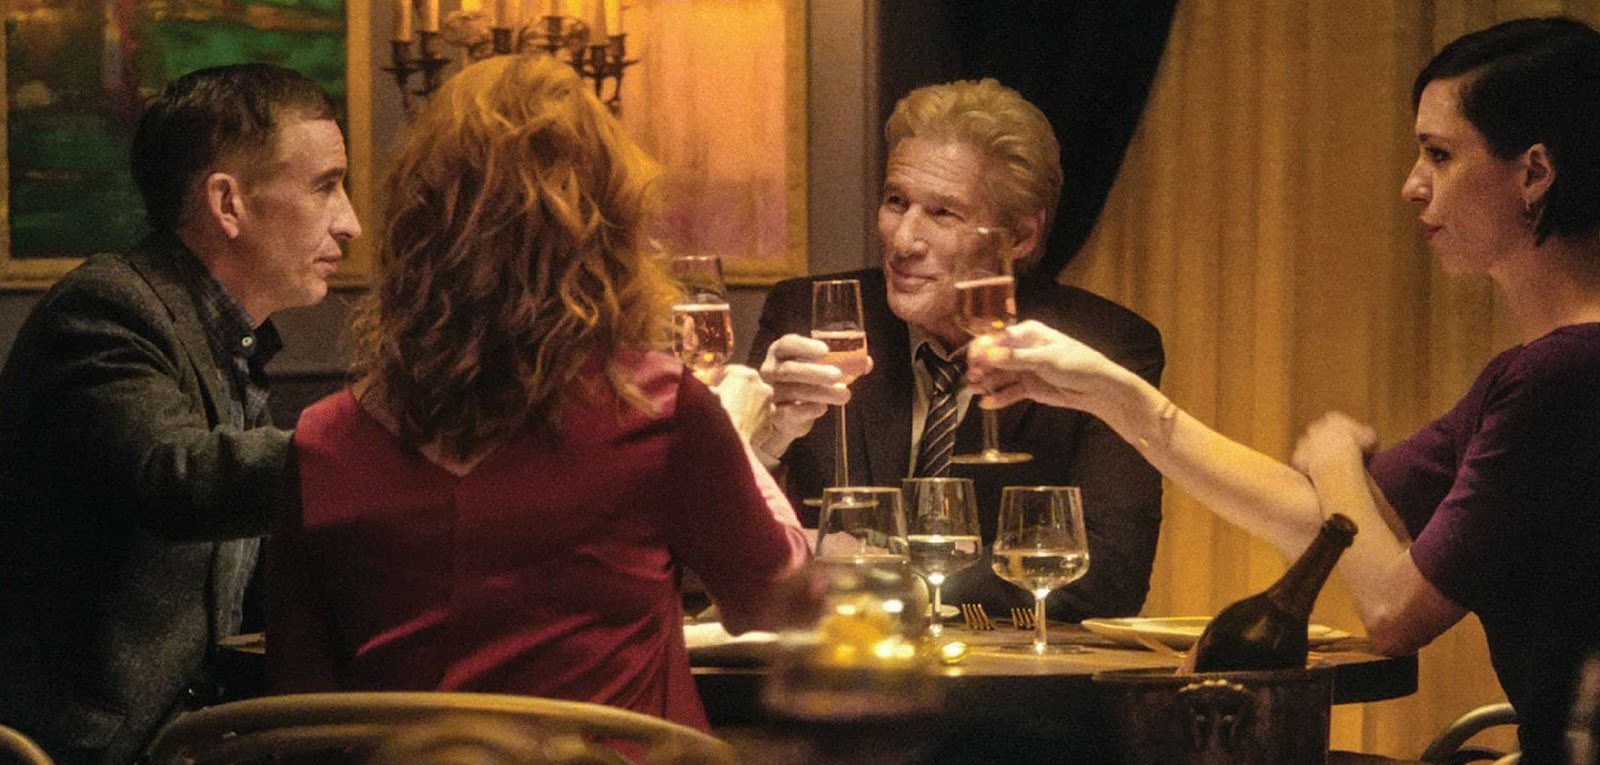 MOVIES: The Dinner - Review